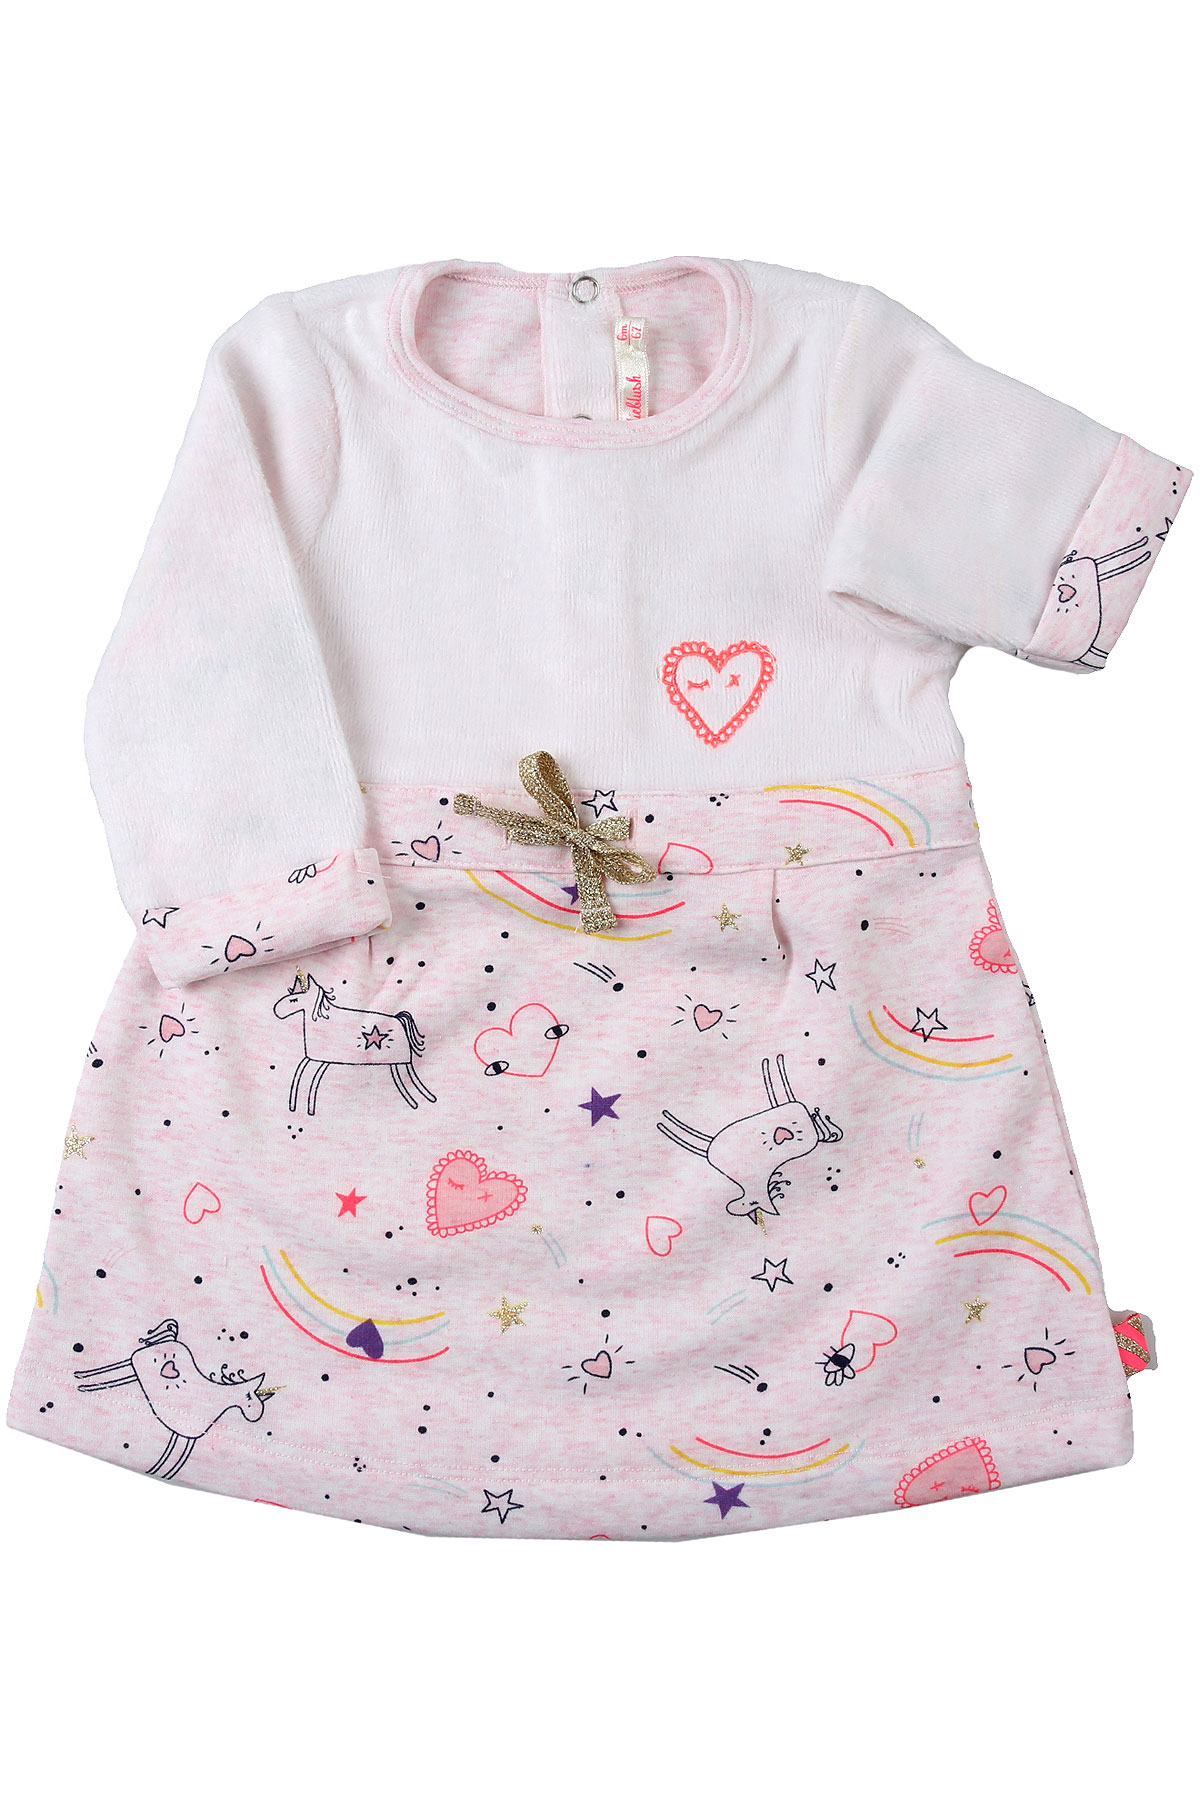 Billieblush Baby Dress for Girls On Sale, Pale Pink, polyester, 2019, 12M 18M 2Y 3Y 6M 9M